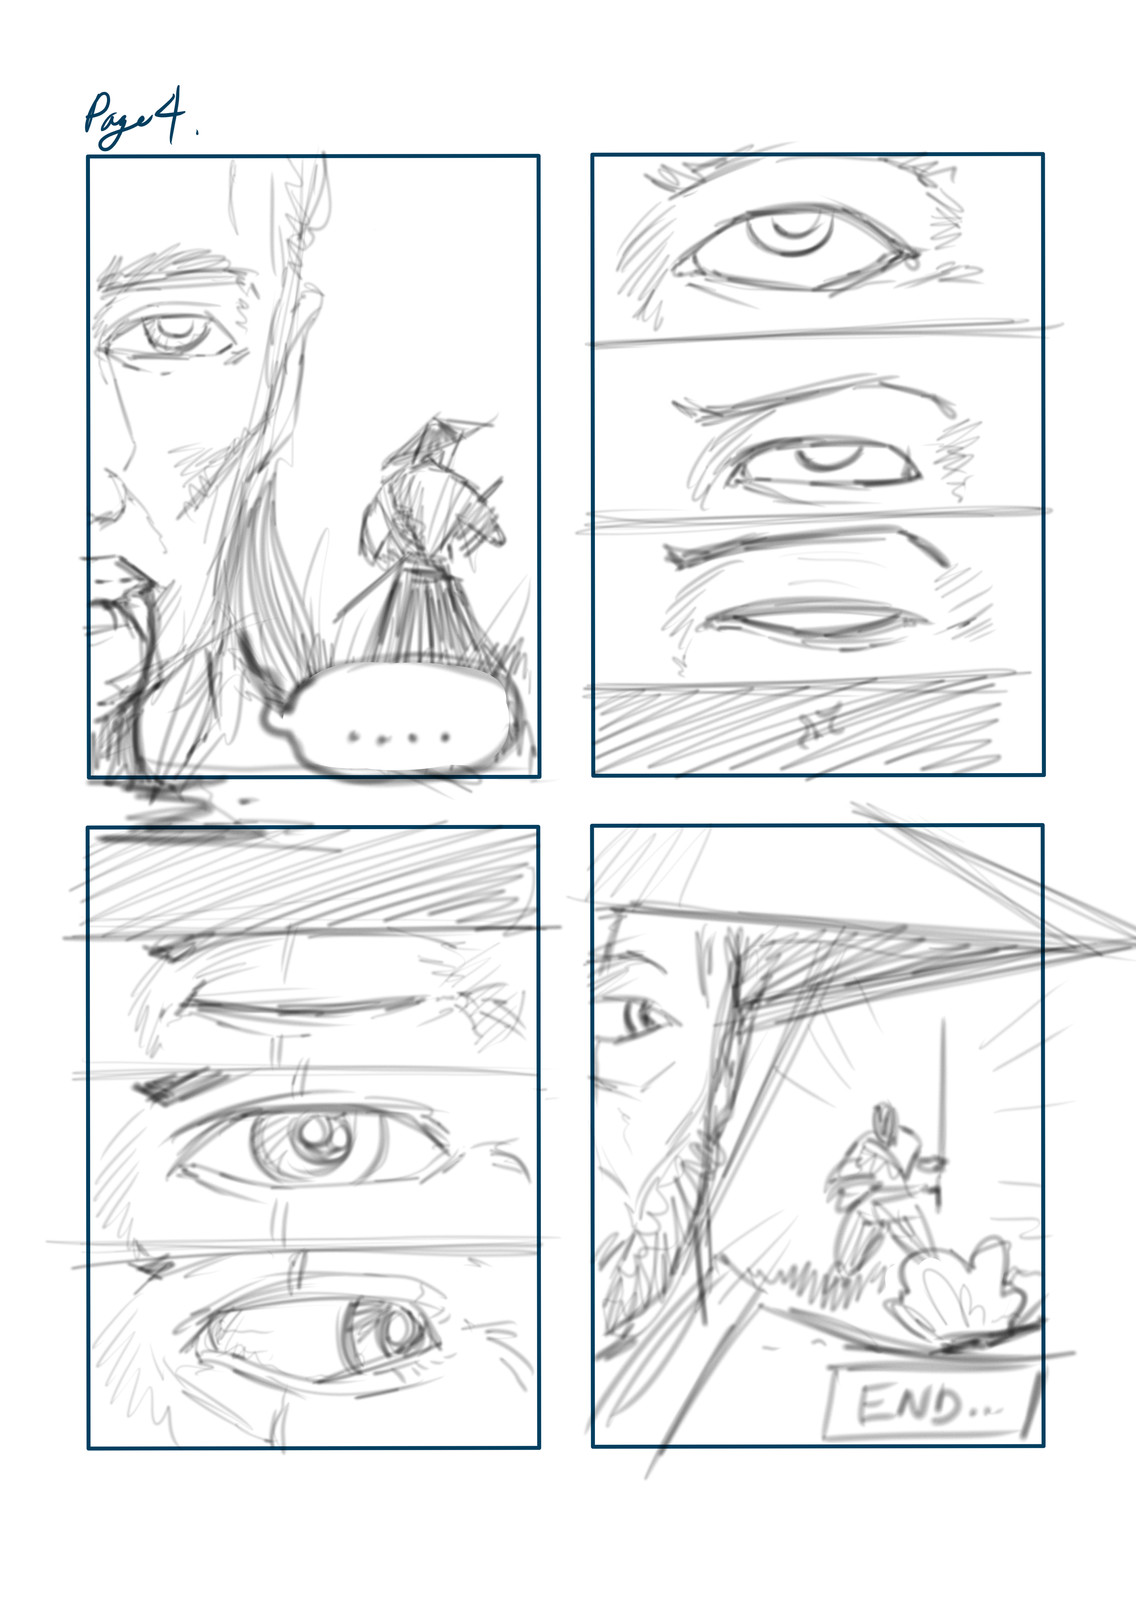 Pencil layout for Page 04, using Mischief